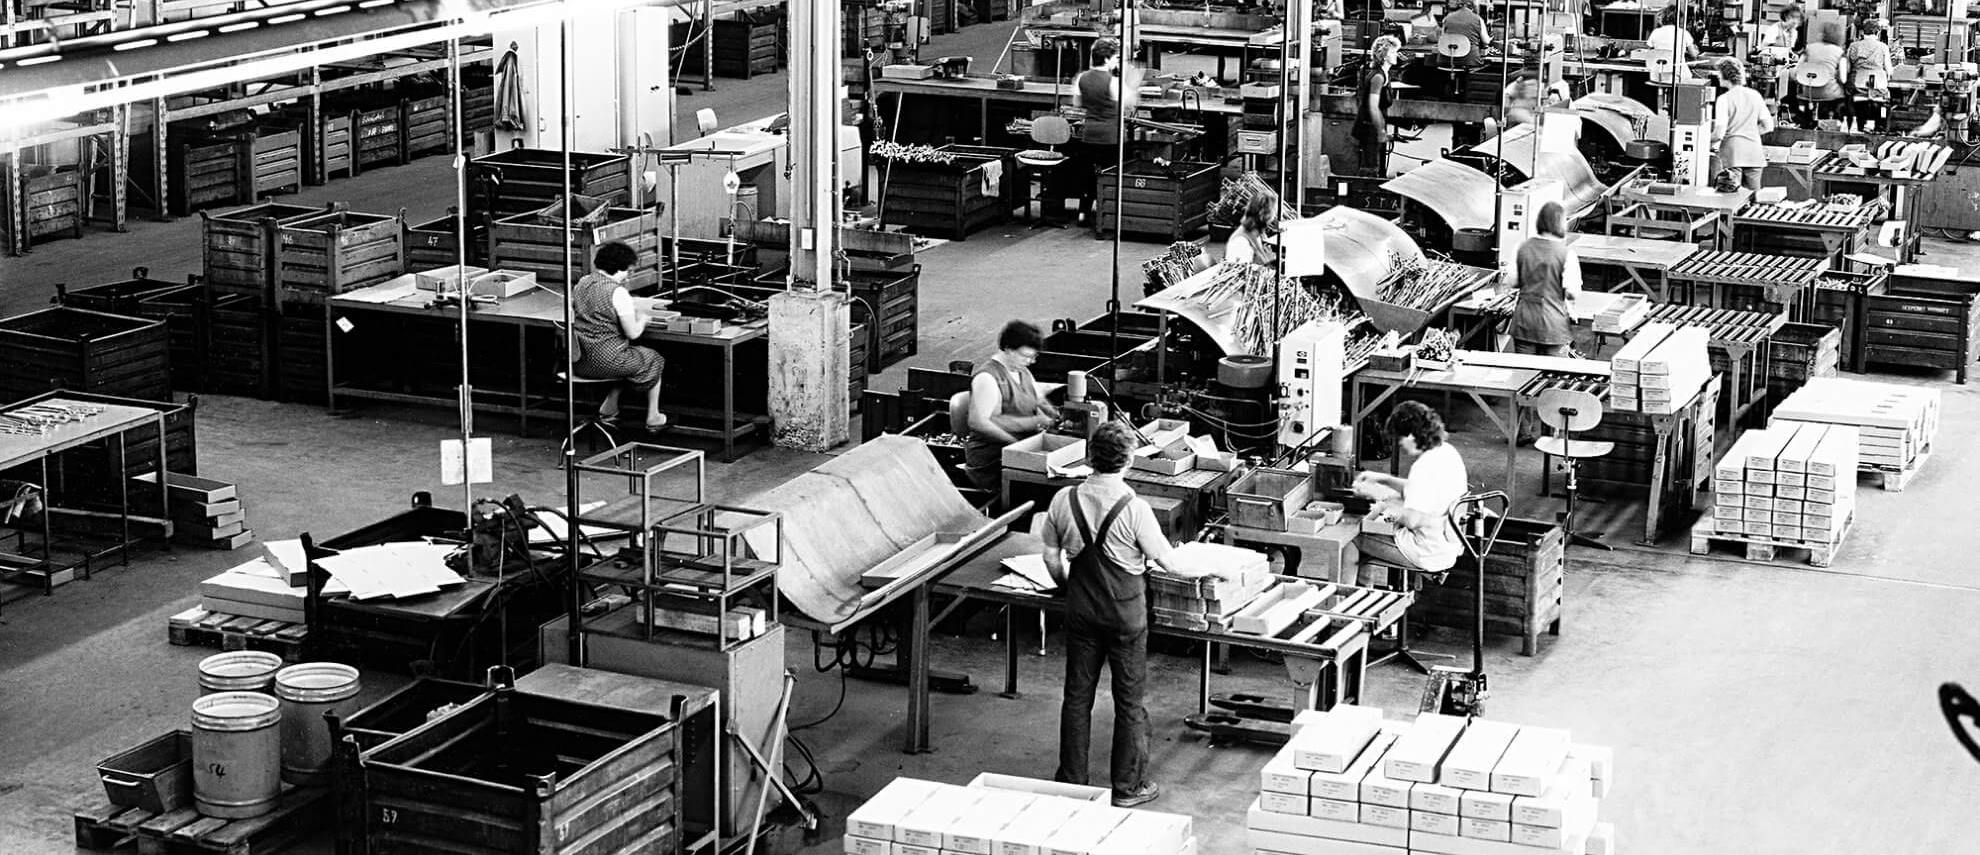 Production usine Bilstein en 1980